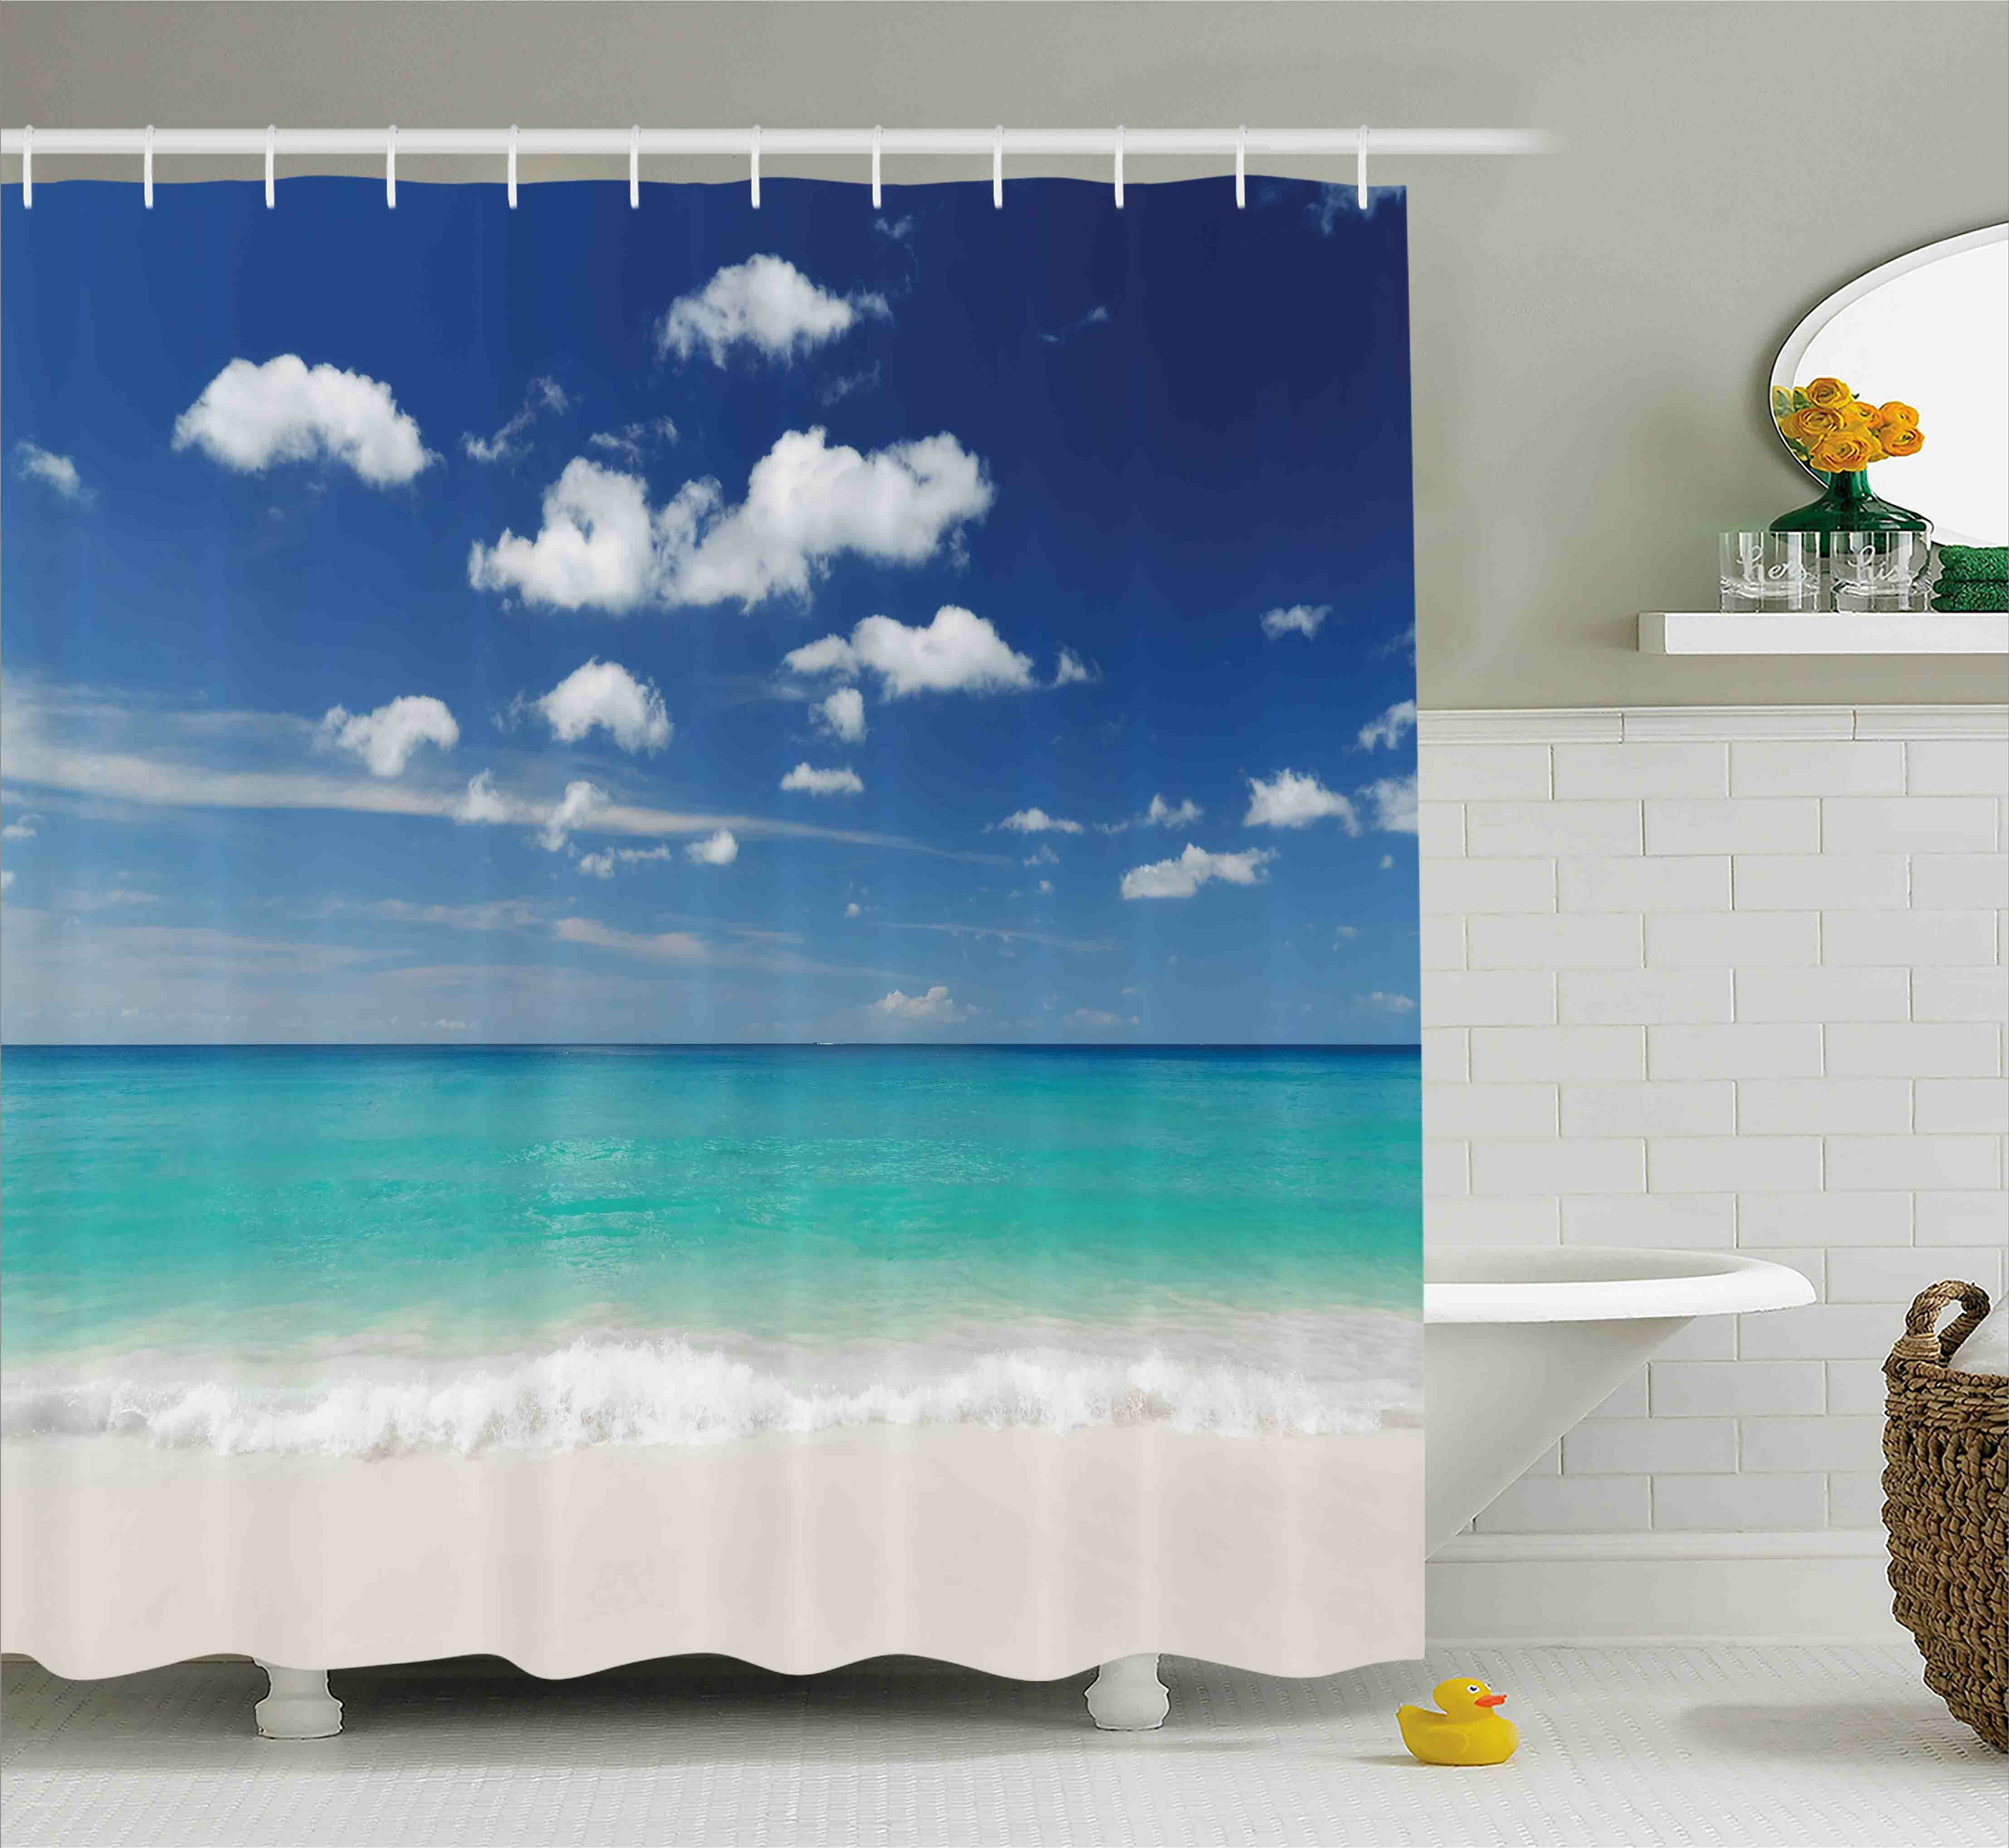 Ebern Designs Kelley Tropical Summer Beach With Exquisite Sky Relax Holiday Away Serene Coast Scenery Single Shower Curtain Wayfair